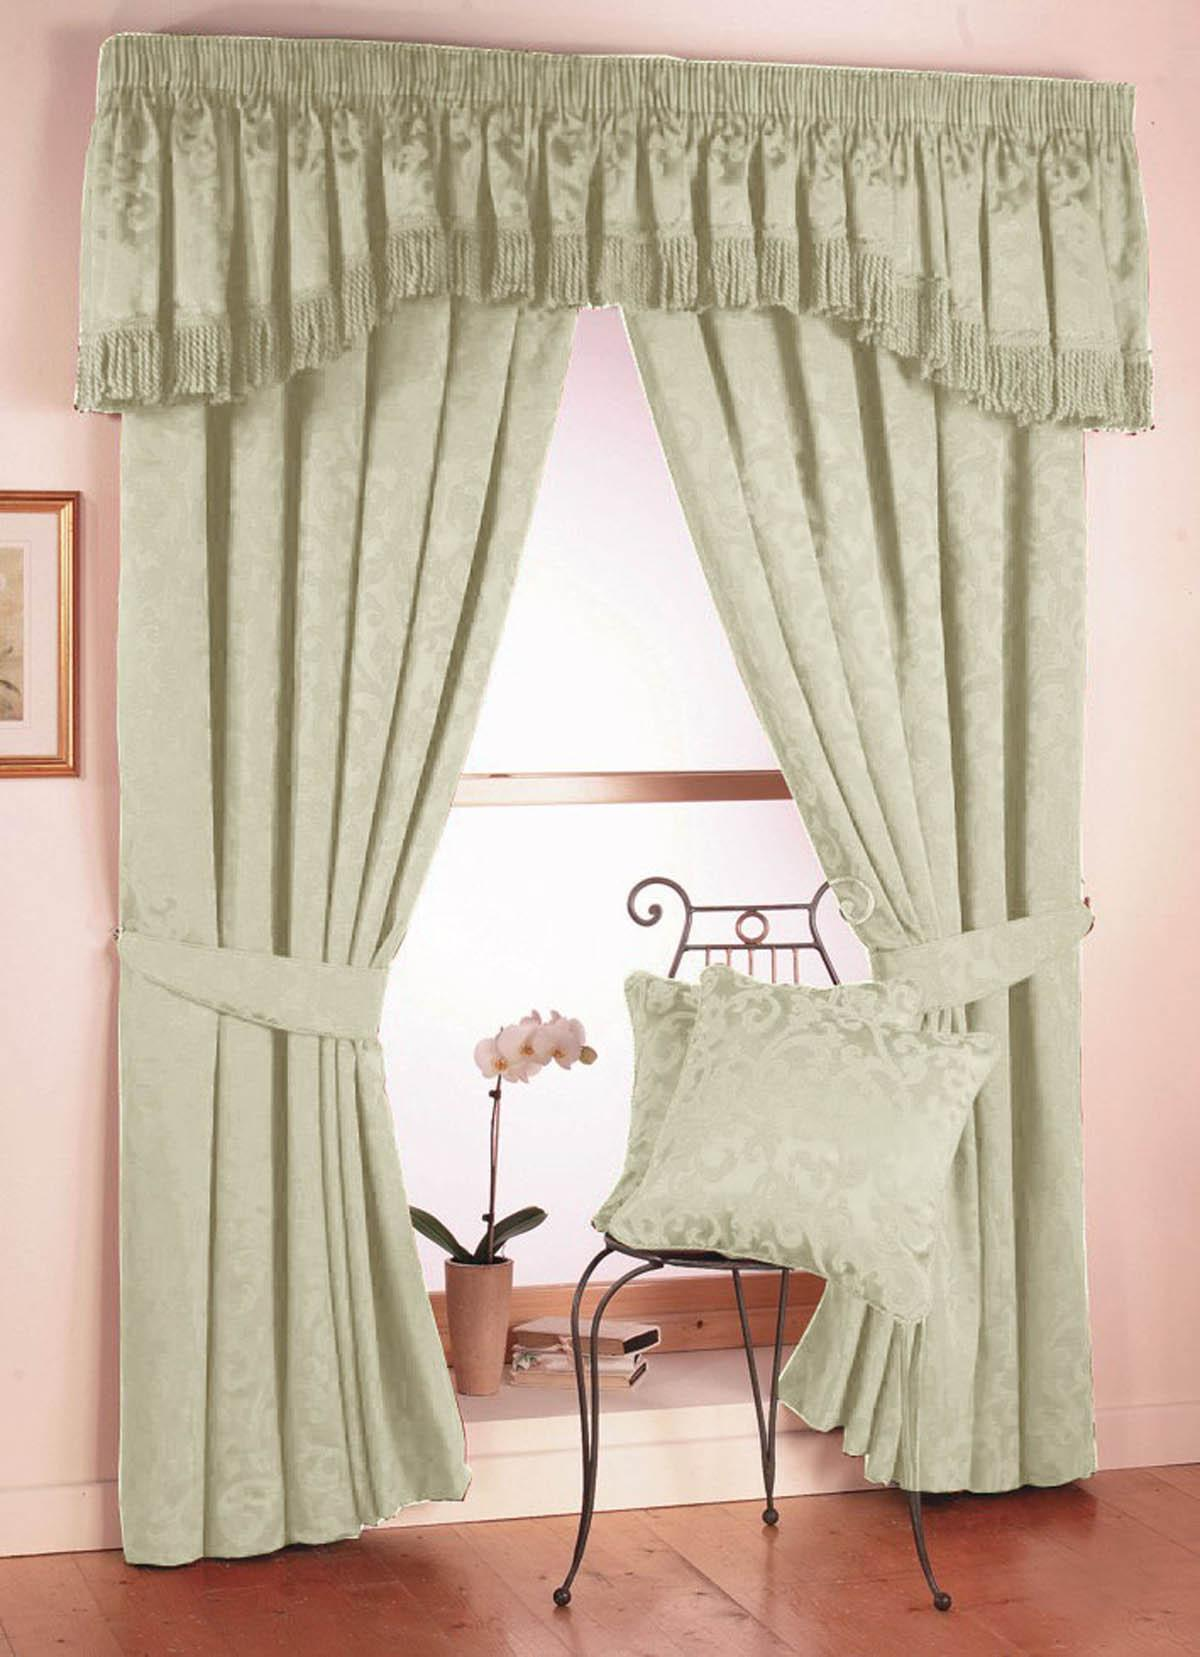 Stockists of Natural Eton Ready Made Curtains